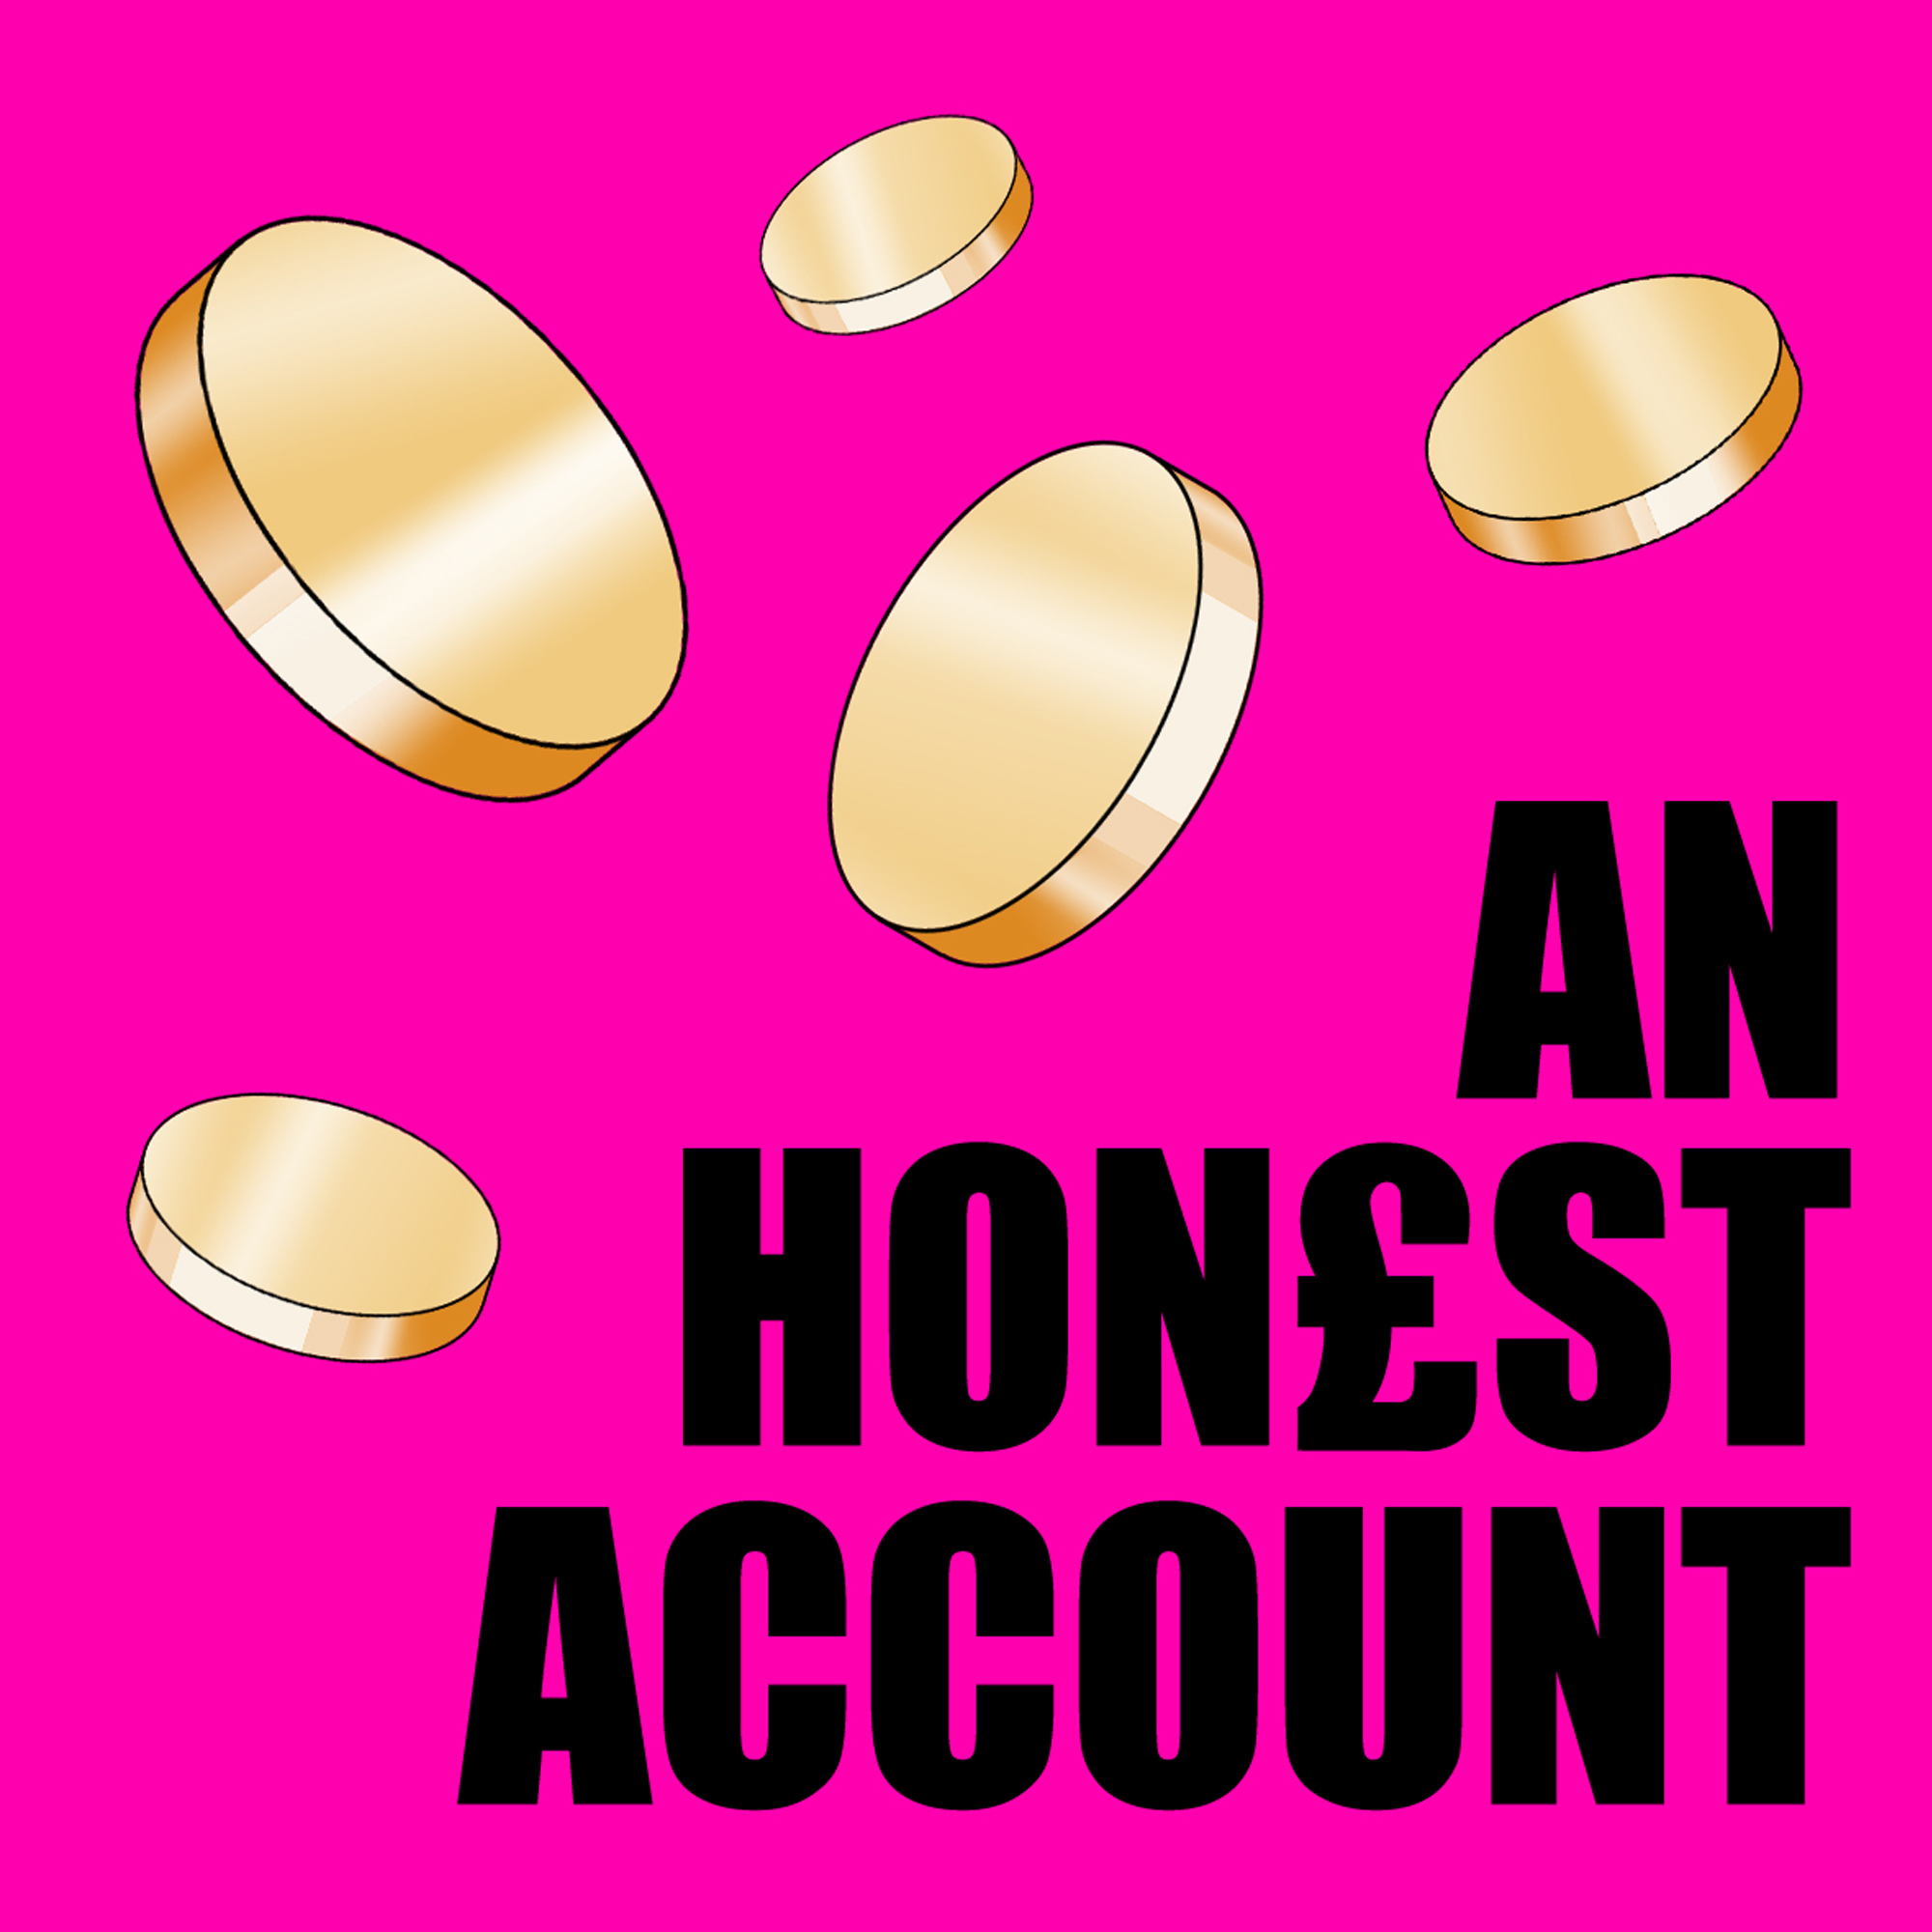 An Honest Account is a podcast about how money affects our lives - our work, health, relationships and more -